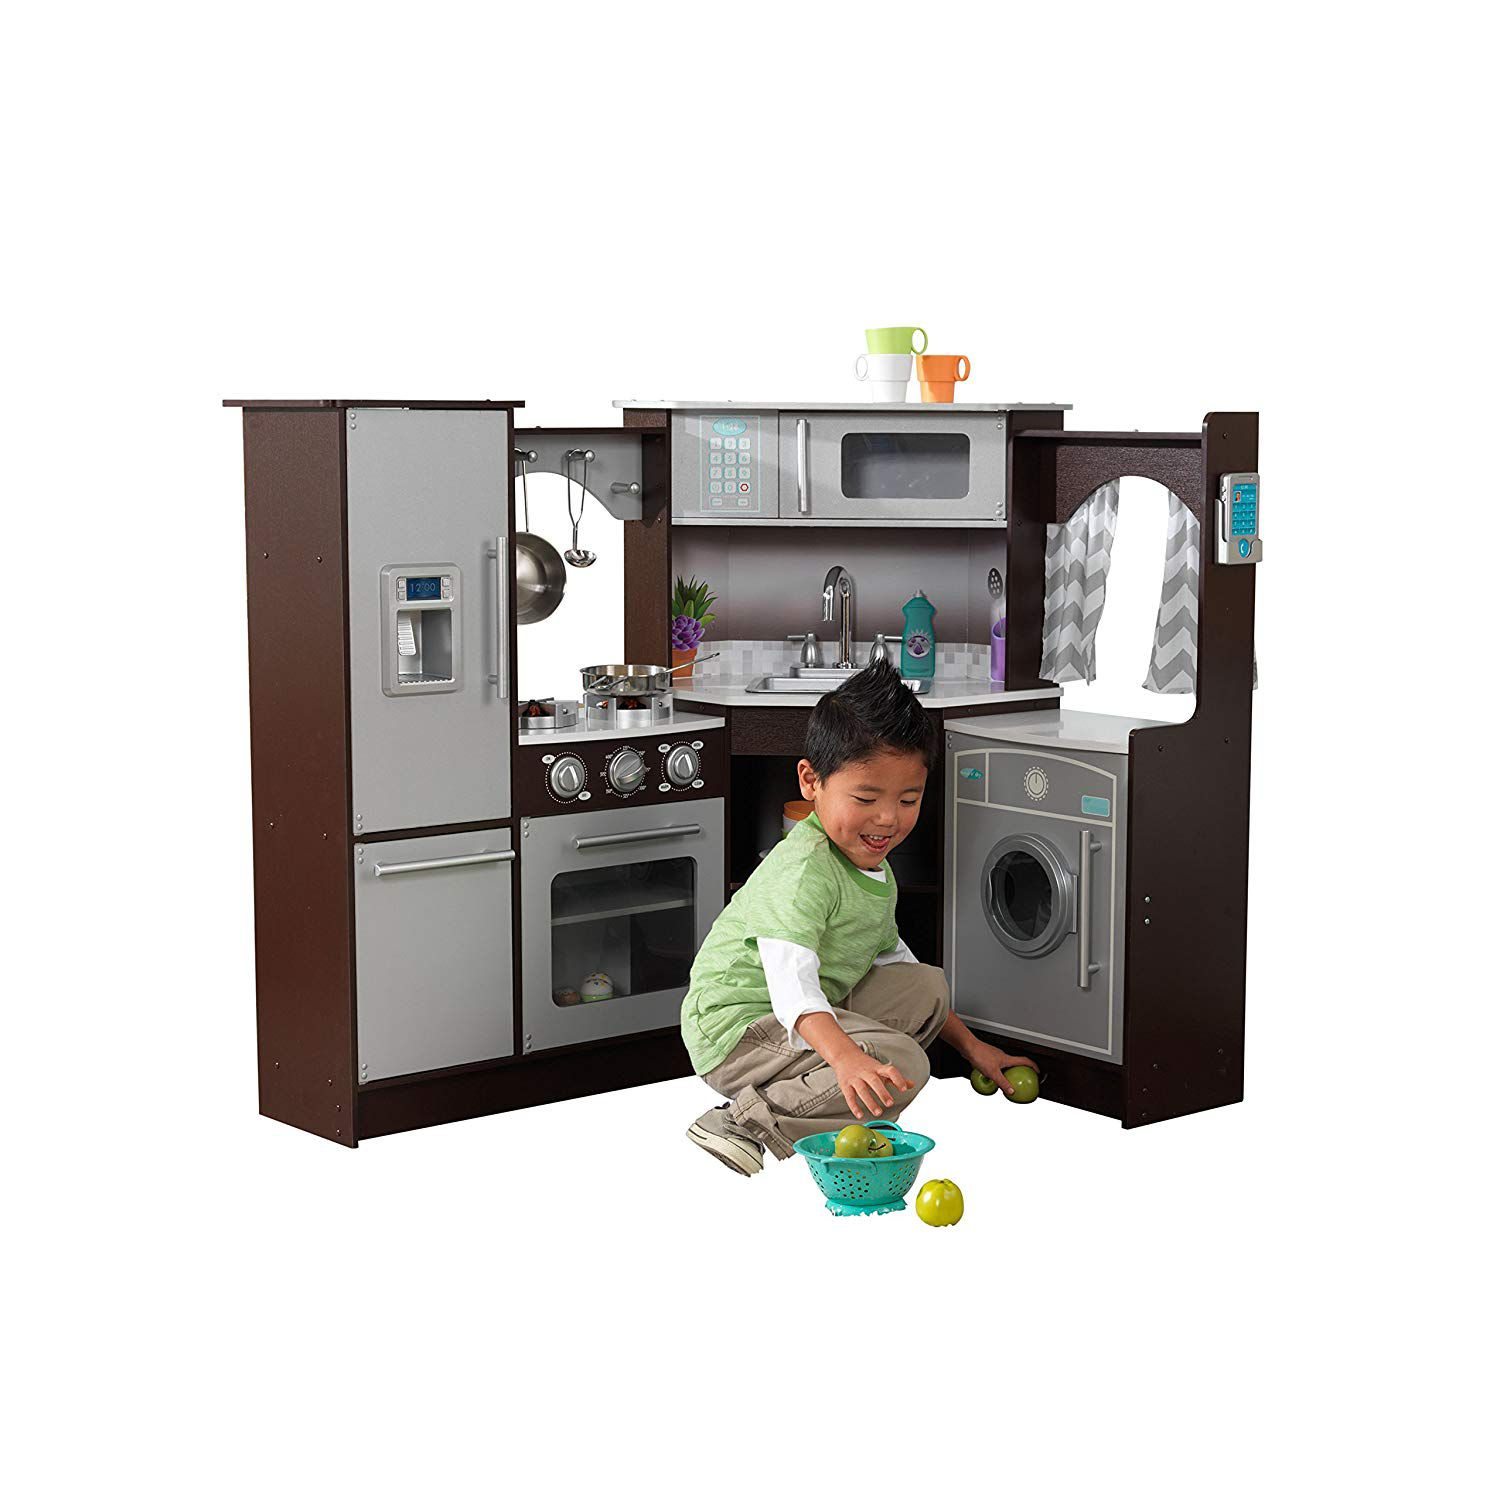 The 13 Best Kitchen Sets For Kids In 2021